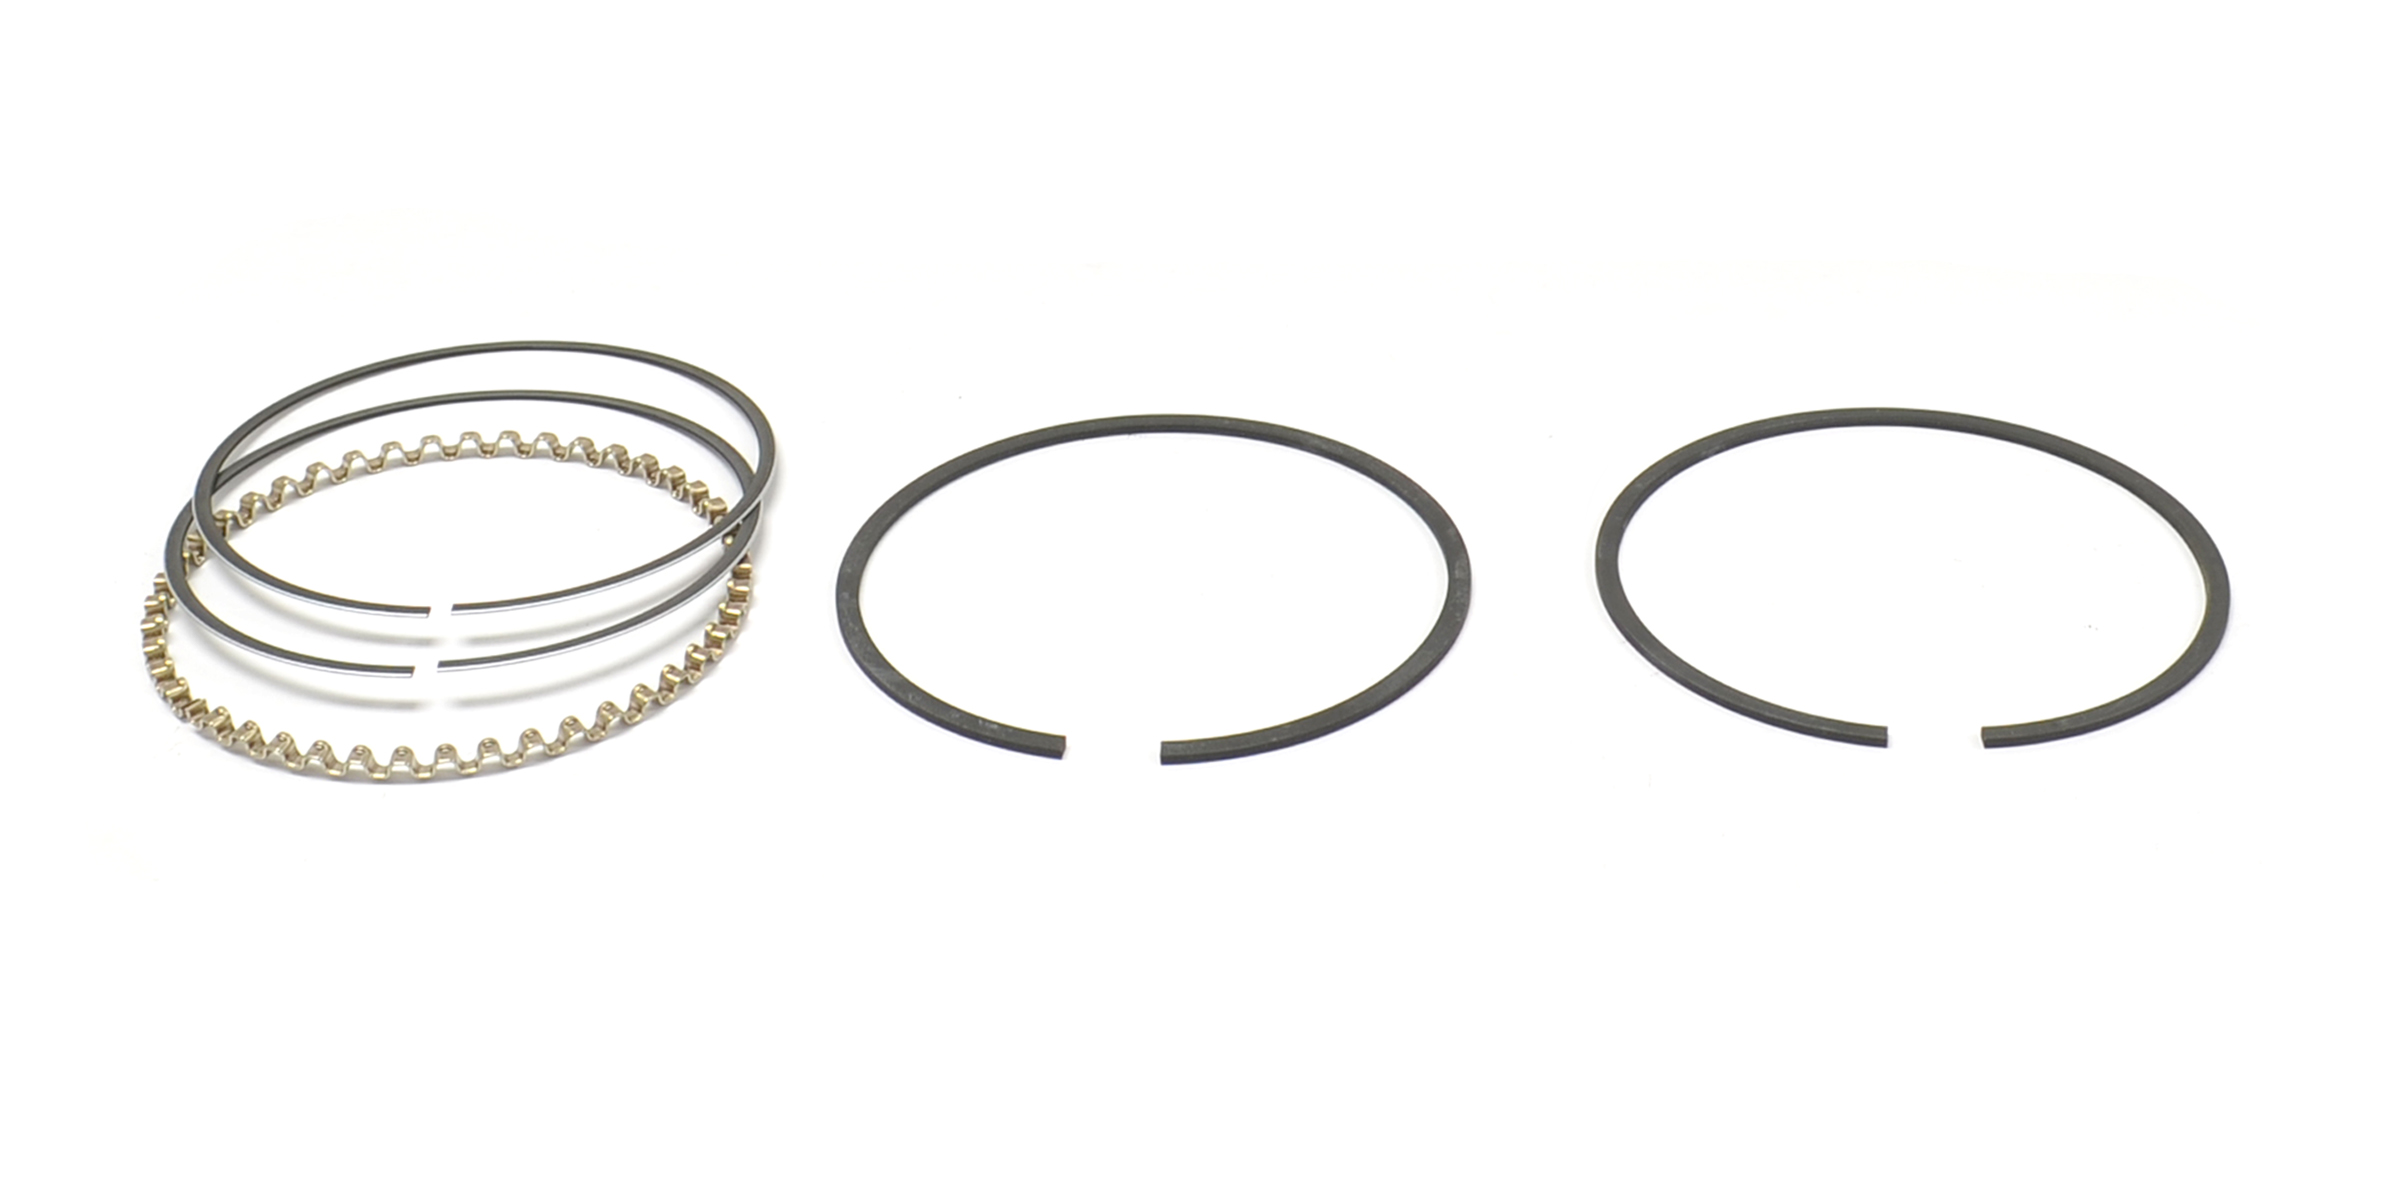 bsa b44 441 single hastings piston ring set r3750  hstd